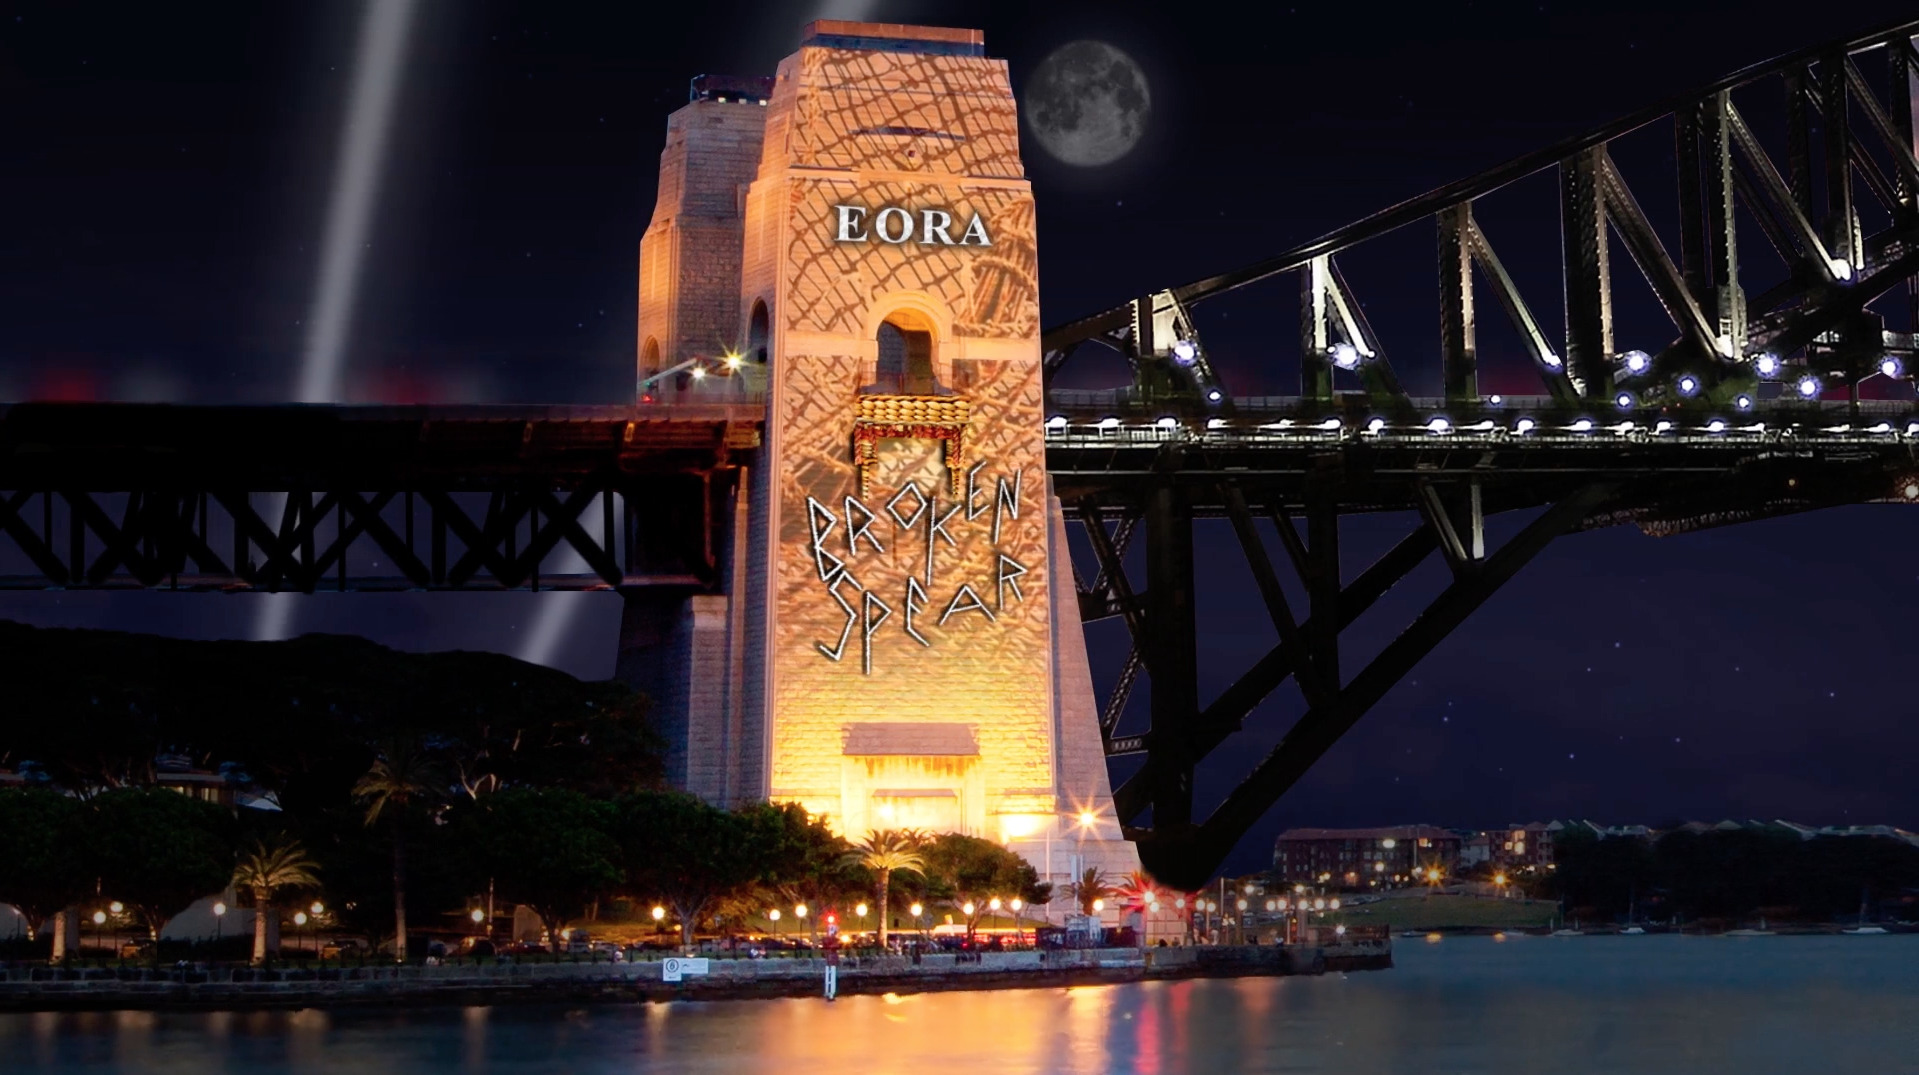 An artists impression of the Vivid light installation on the Sydney Harbour Bridge.